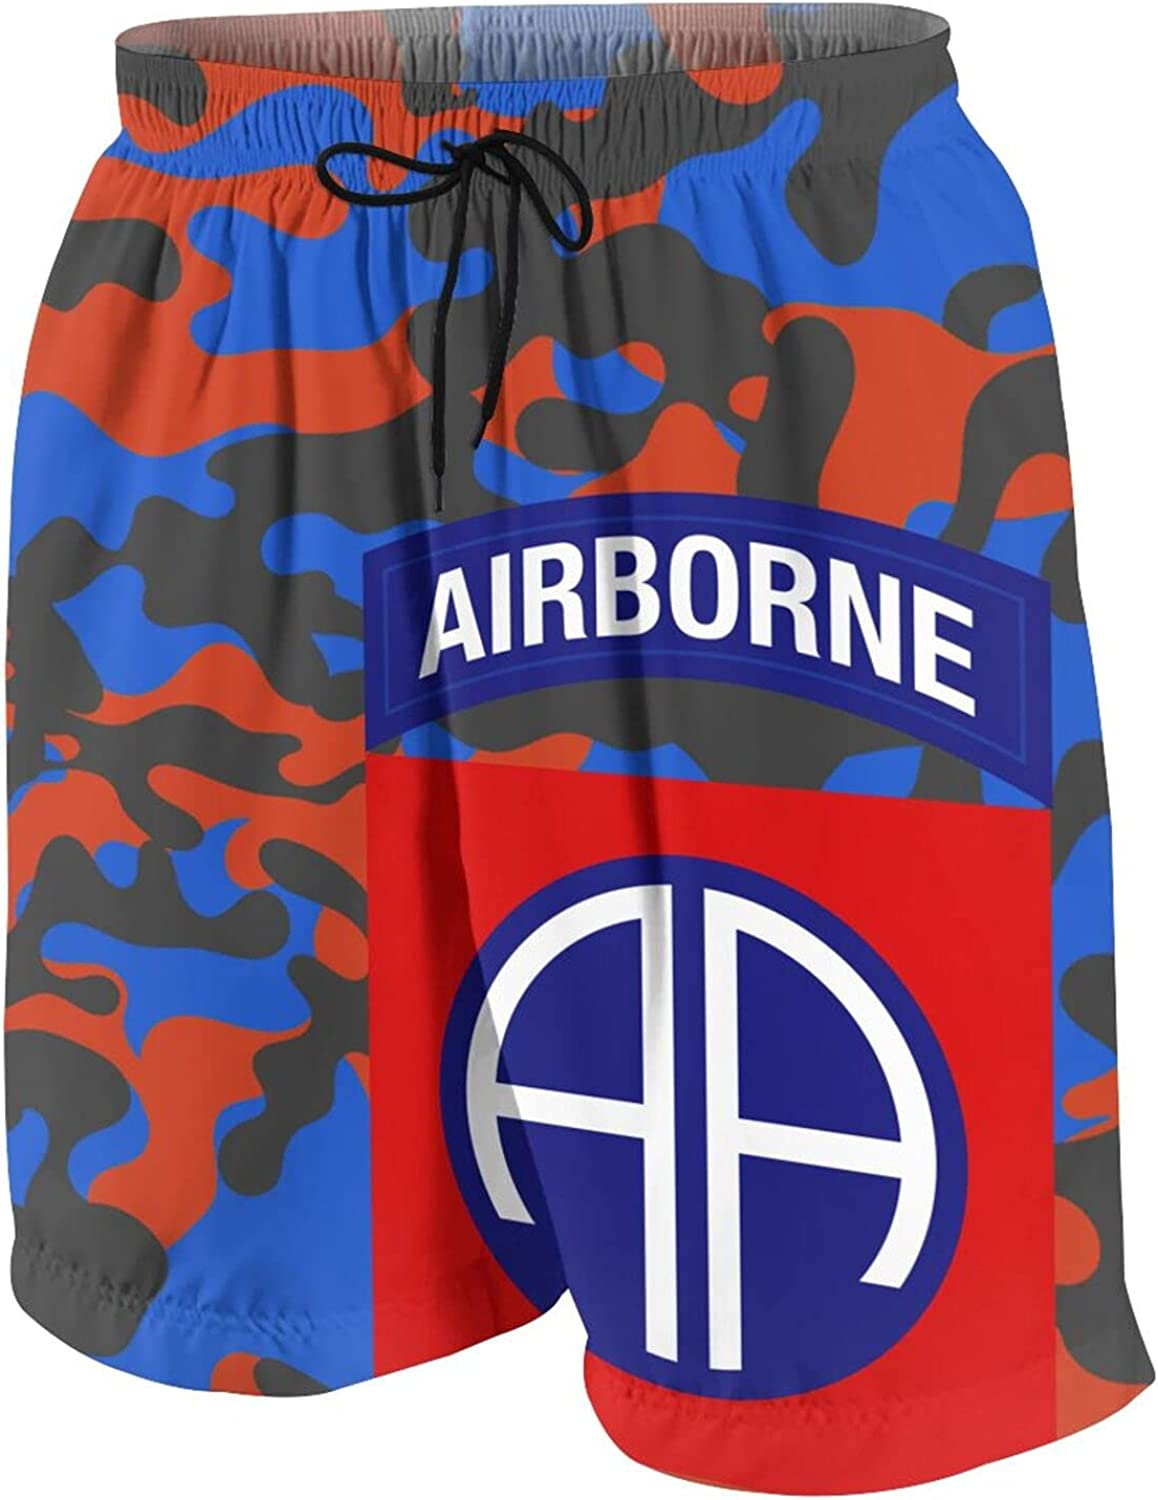 Long-awaited Changzixlaw 82nd Airborne Division Boys Youth Girls Max 77% OFF Bea Children